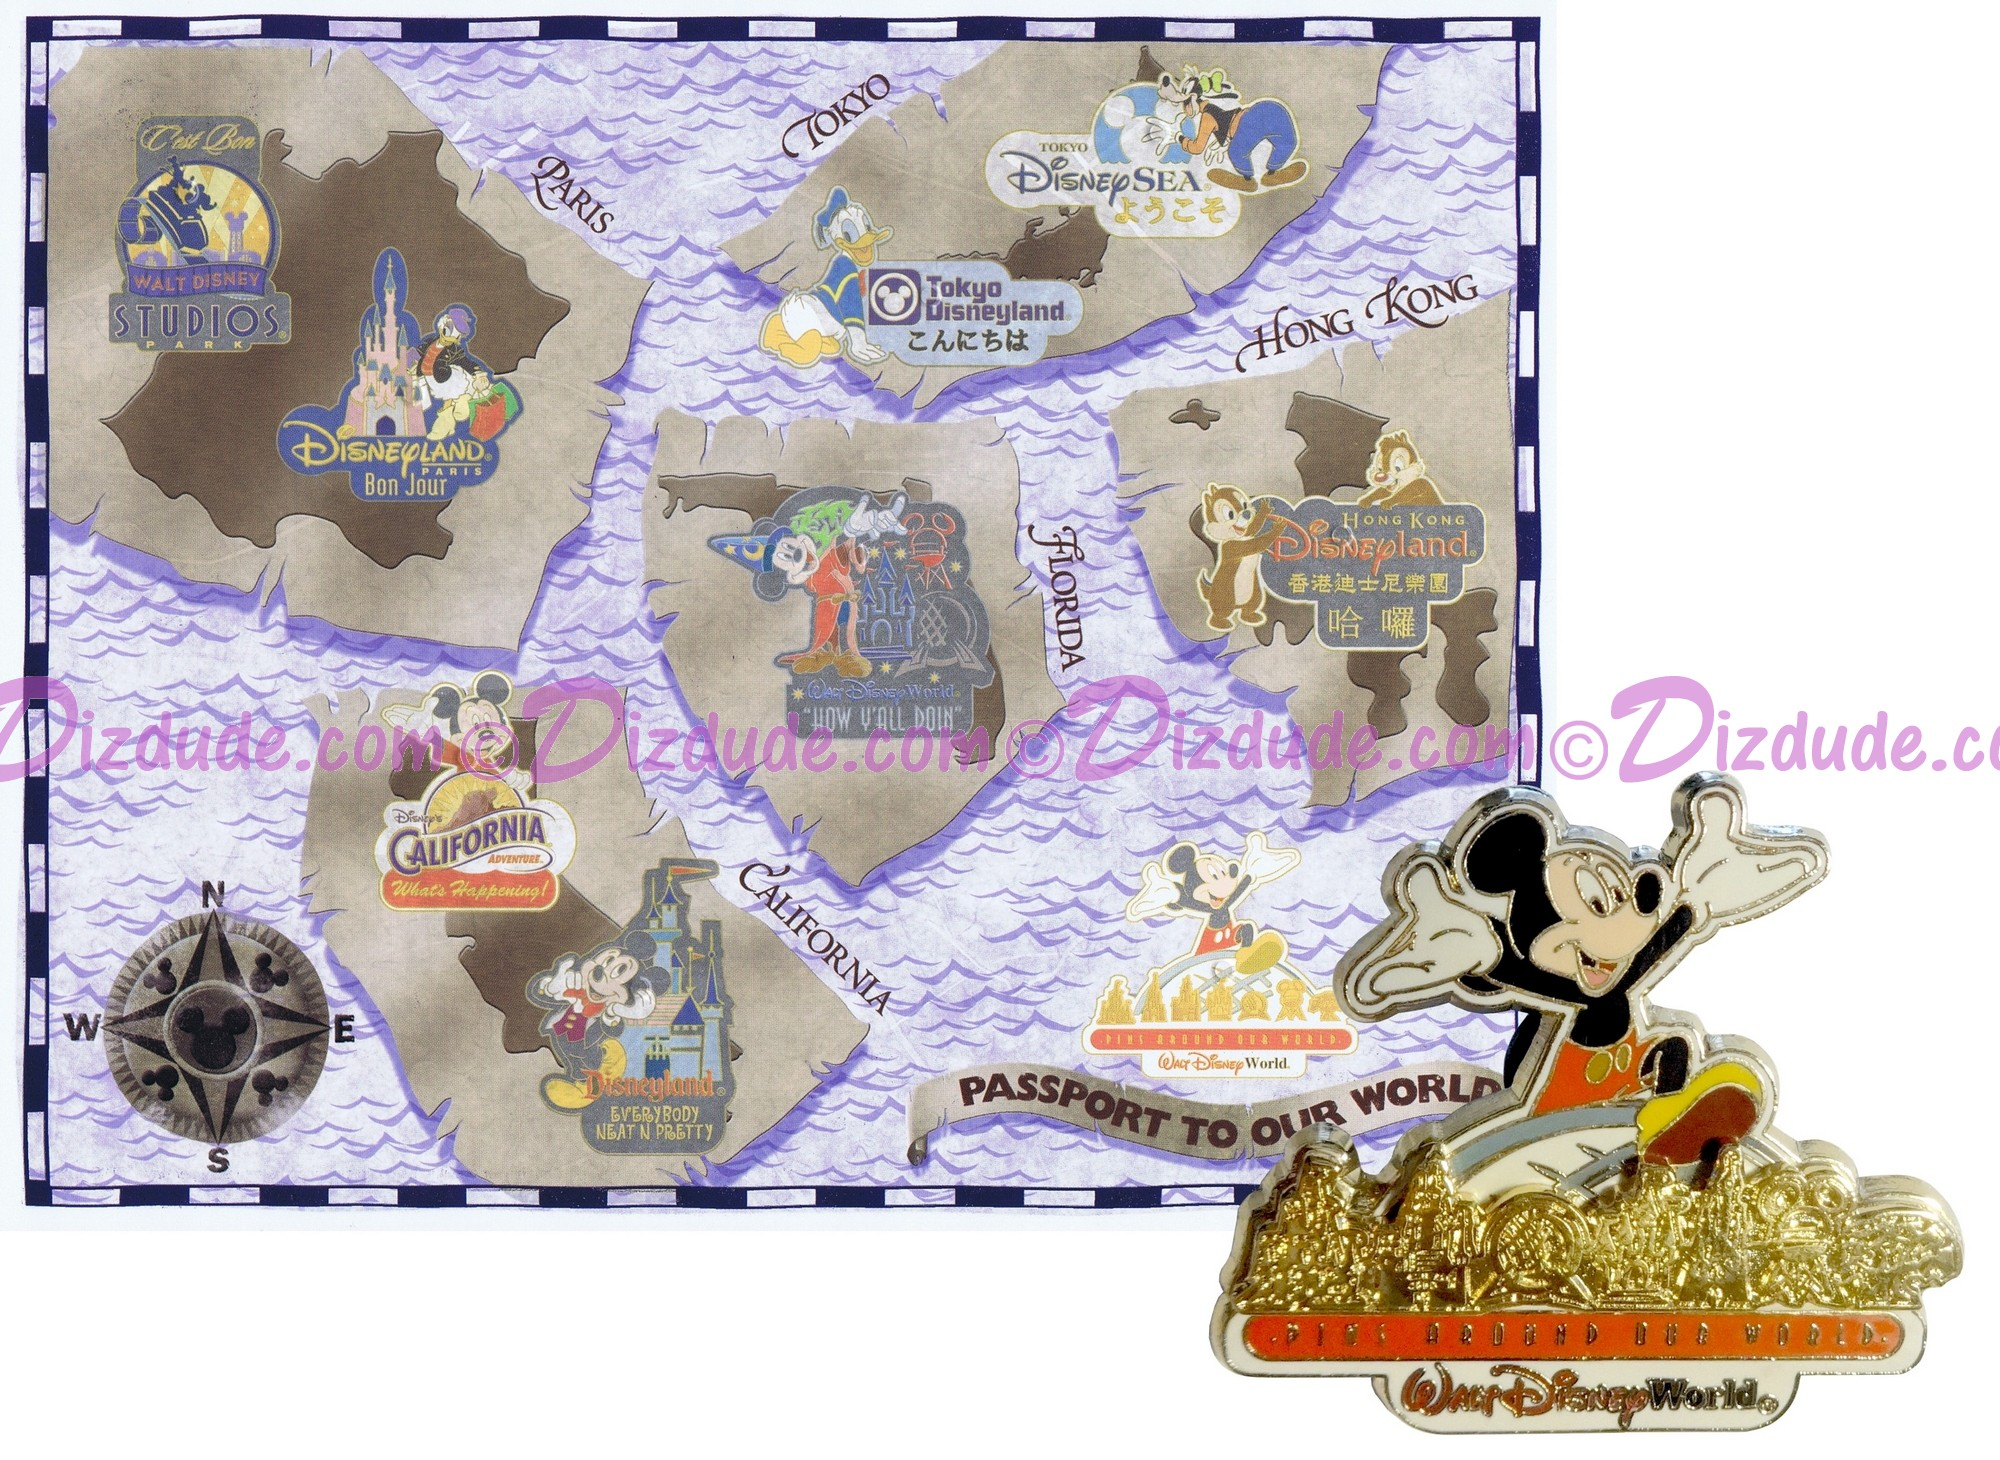 Walt Disney World Pin Pursuit - Passport to Our World Map Pin-Board 2001 with Mickey Mouse Completer Pin Limited Edition 5000 © Dizdude.com